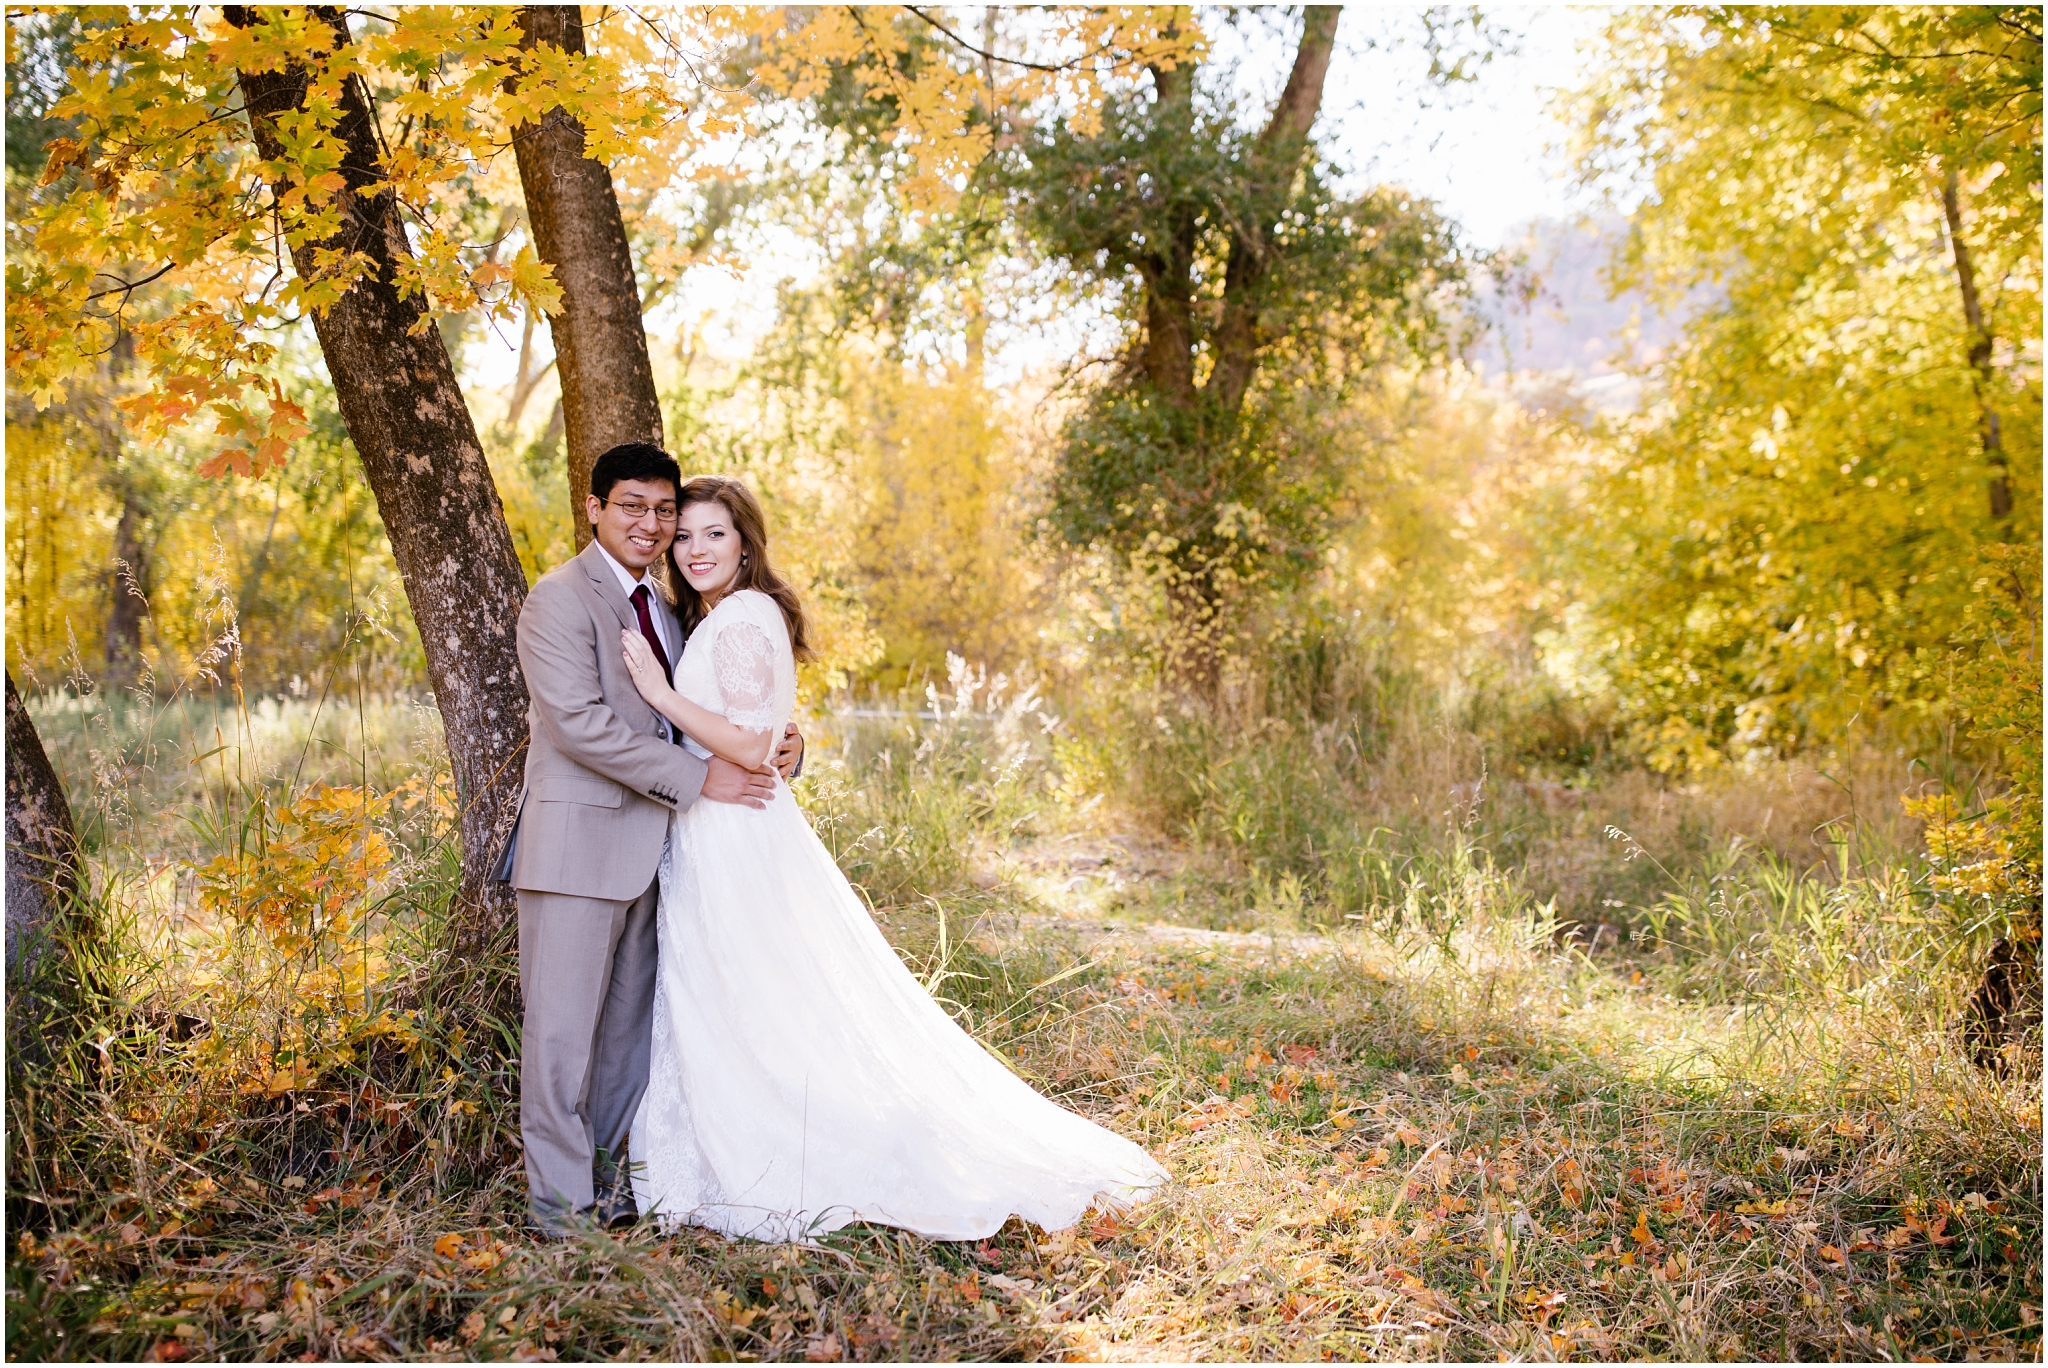 HE-BRIDALS-2_Lizzie-B-Imagery-Utah-Wedding-Photographer-Central-Utah-Park-City-Salt-Lake-City-Hobble-Creek-Canyon-Springville.jpg